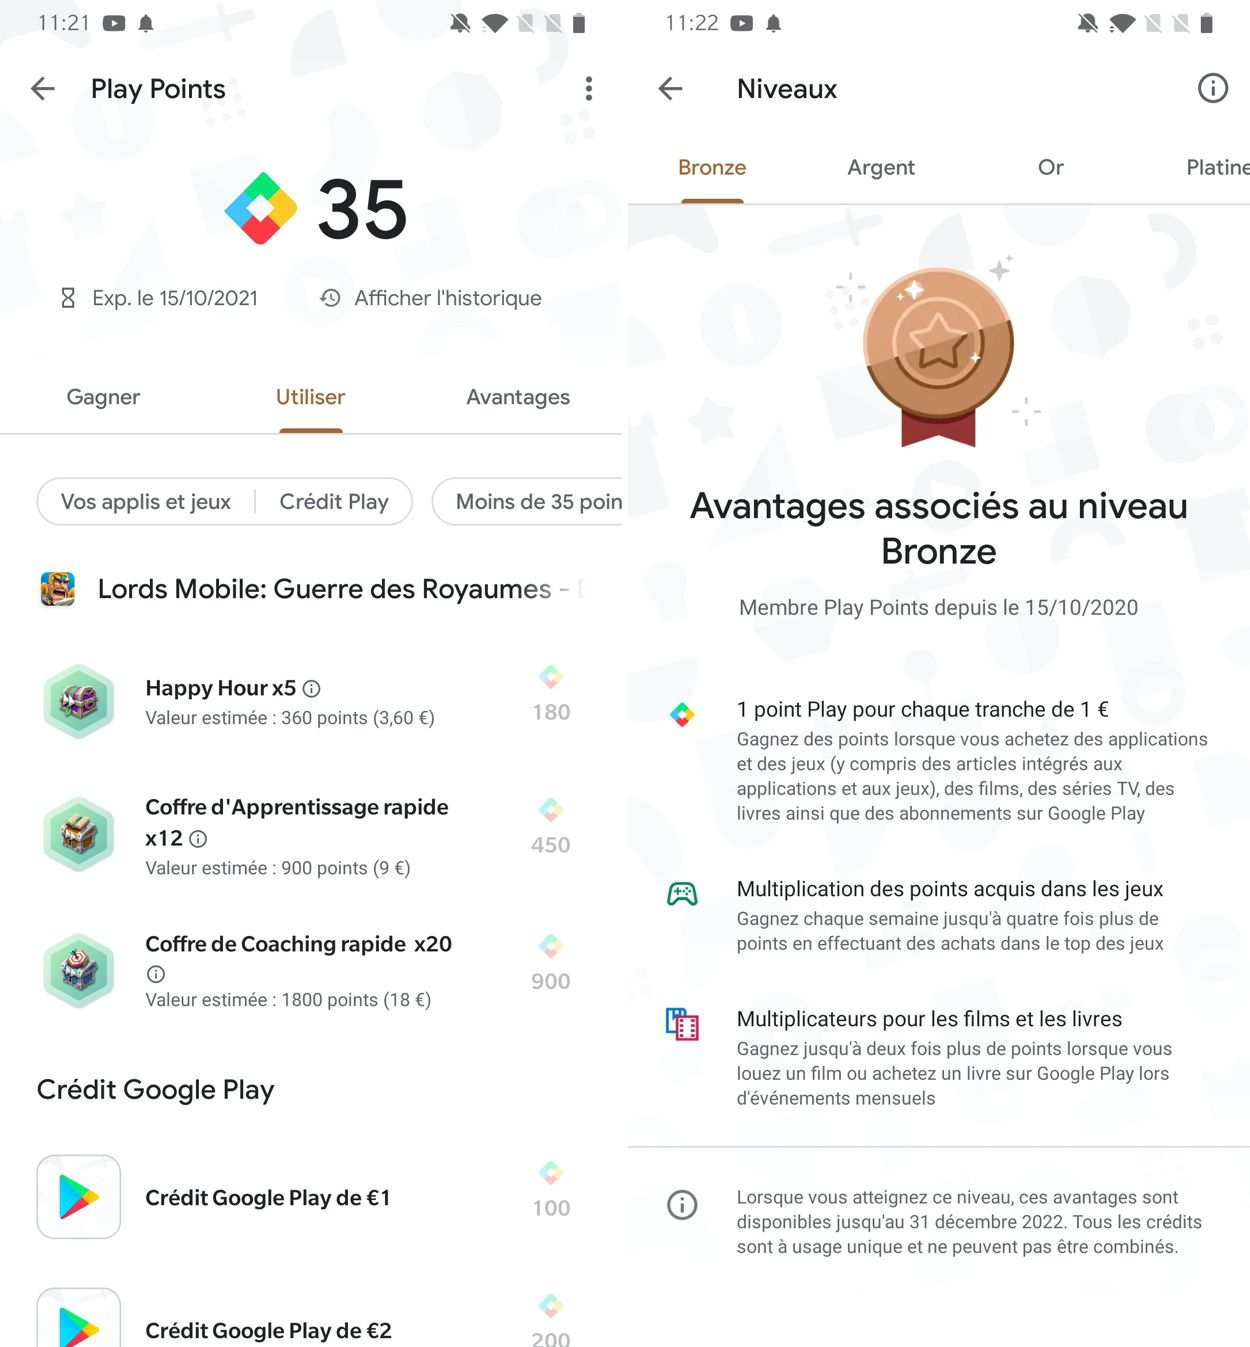 mg 19f85c20 w2170 w828 w1250 - Google Play Points: a loyalty program to encourage Android users to spend